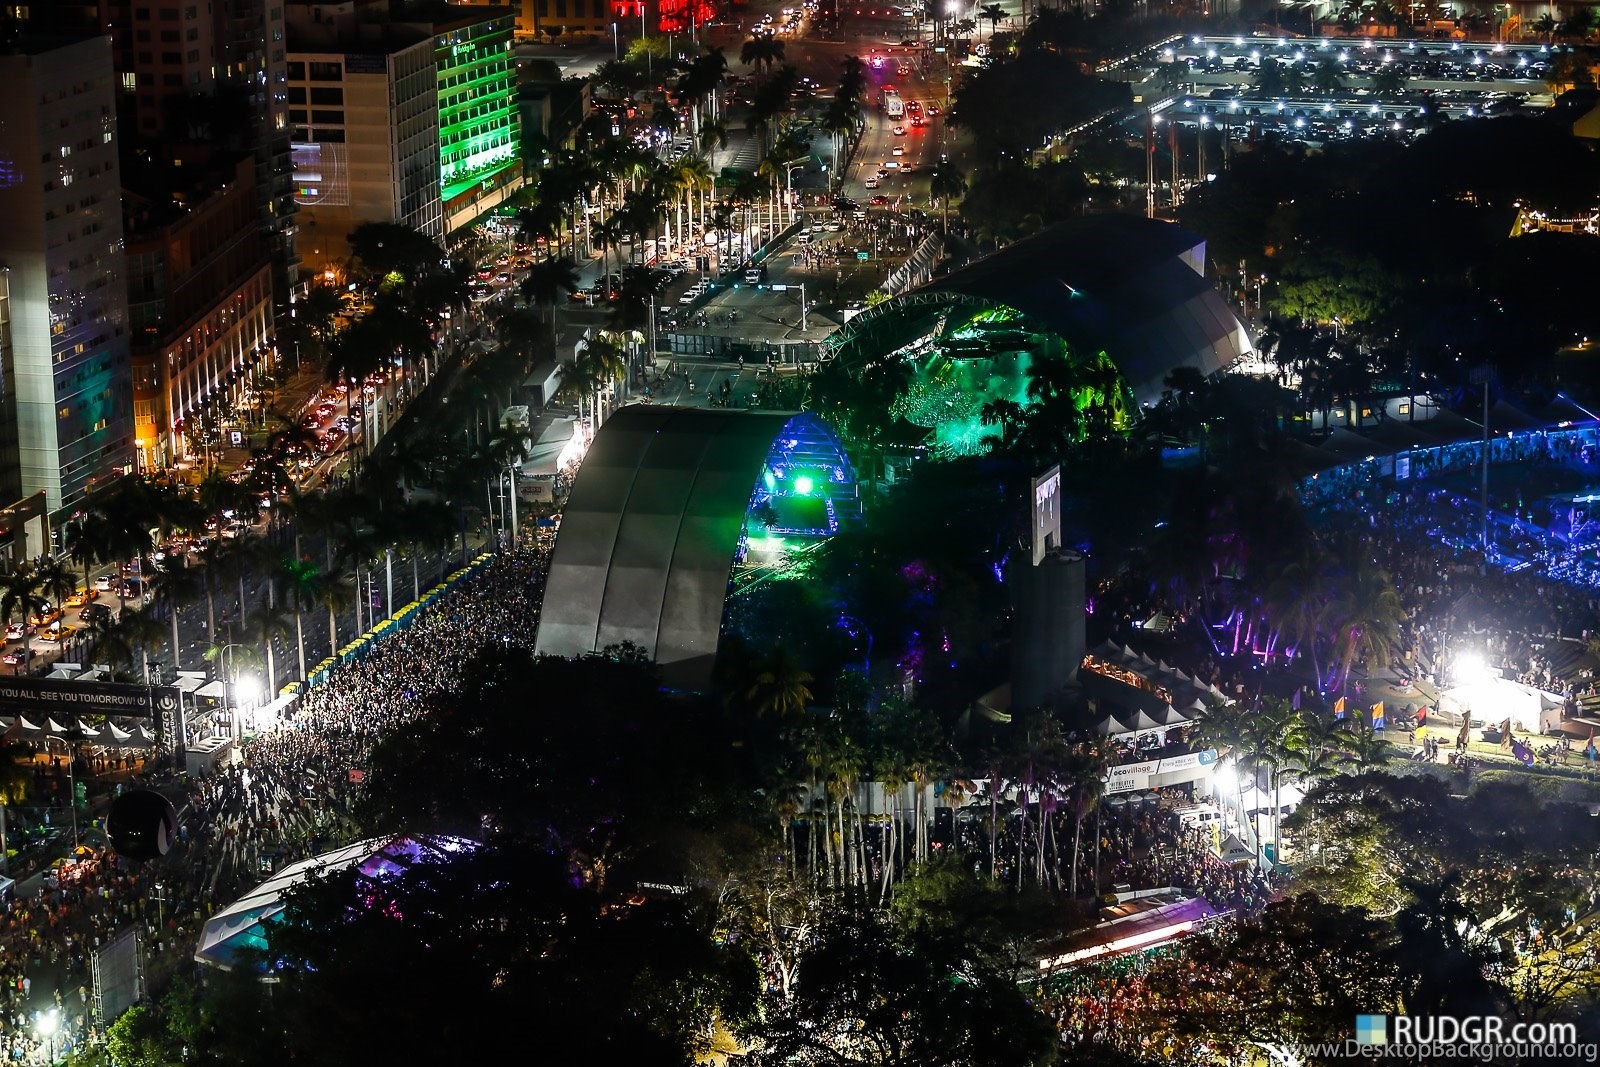 Download Ultra Music Festival Wallpaper Hd Gallery: Ultra Music Festival Miami MMW WMC UltraFest HD Wallpapers